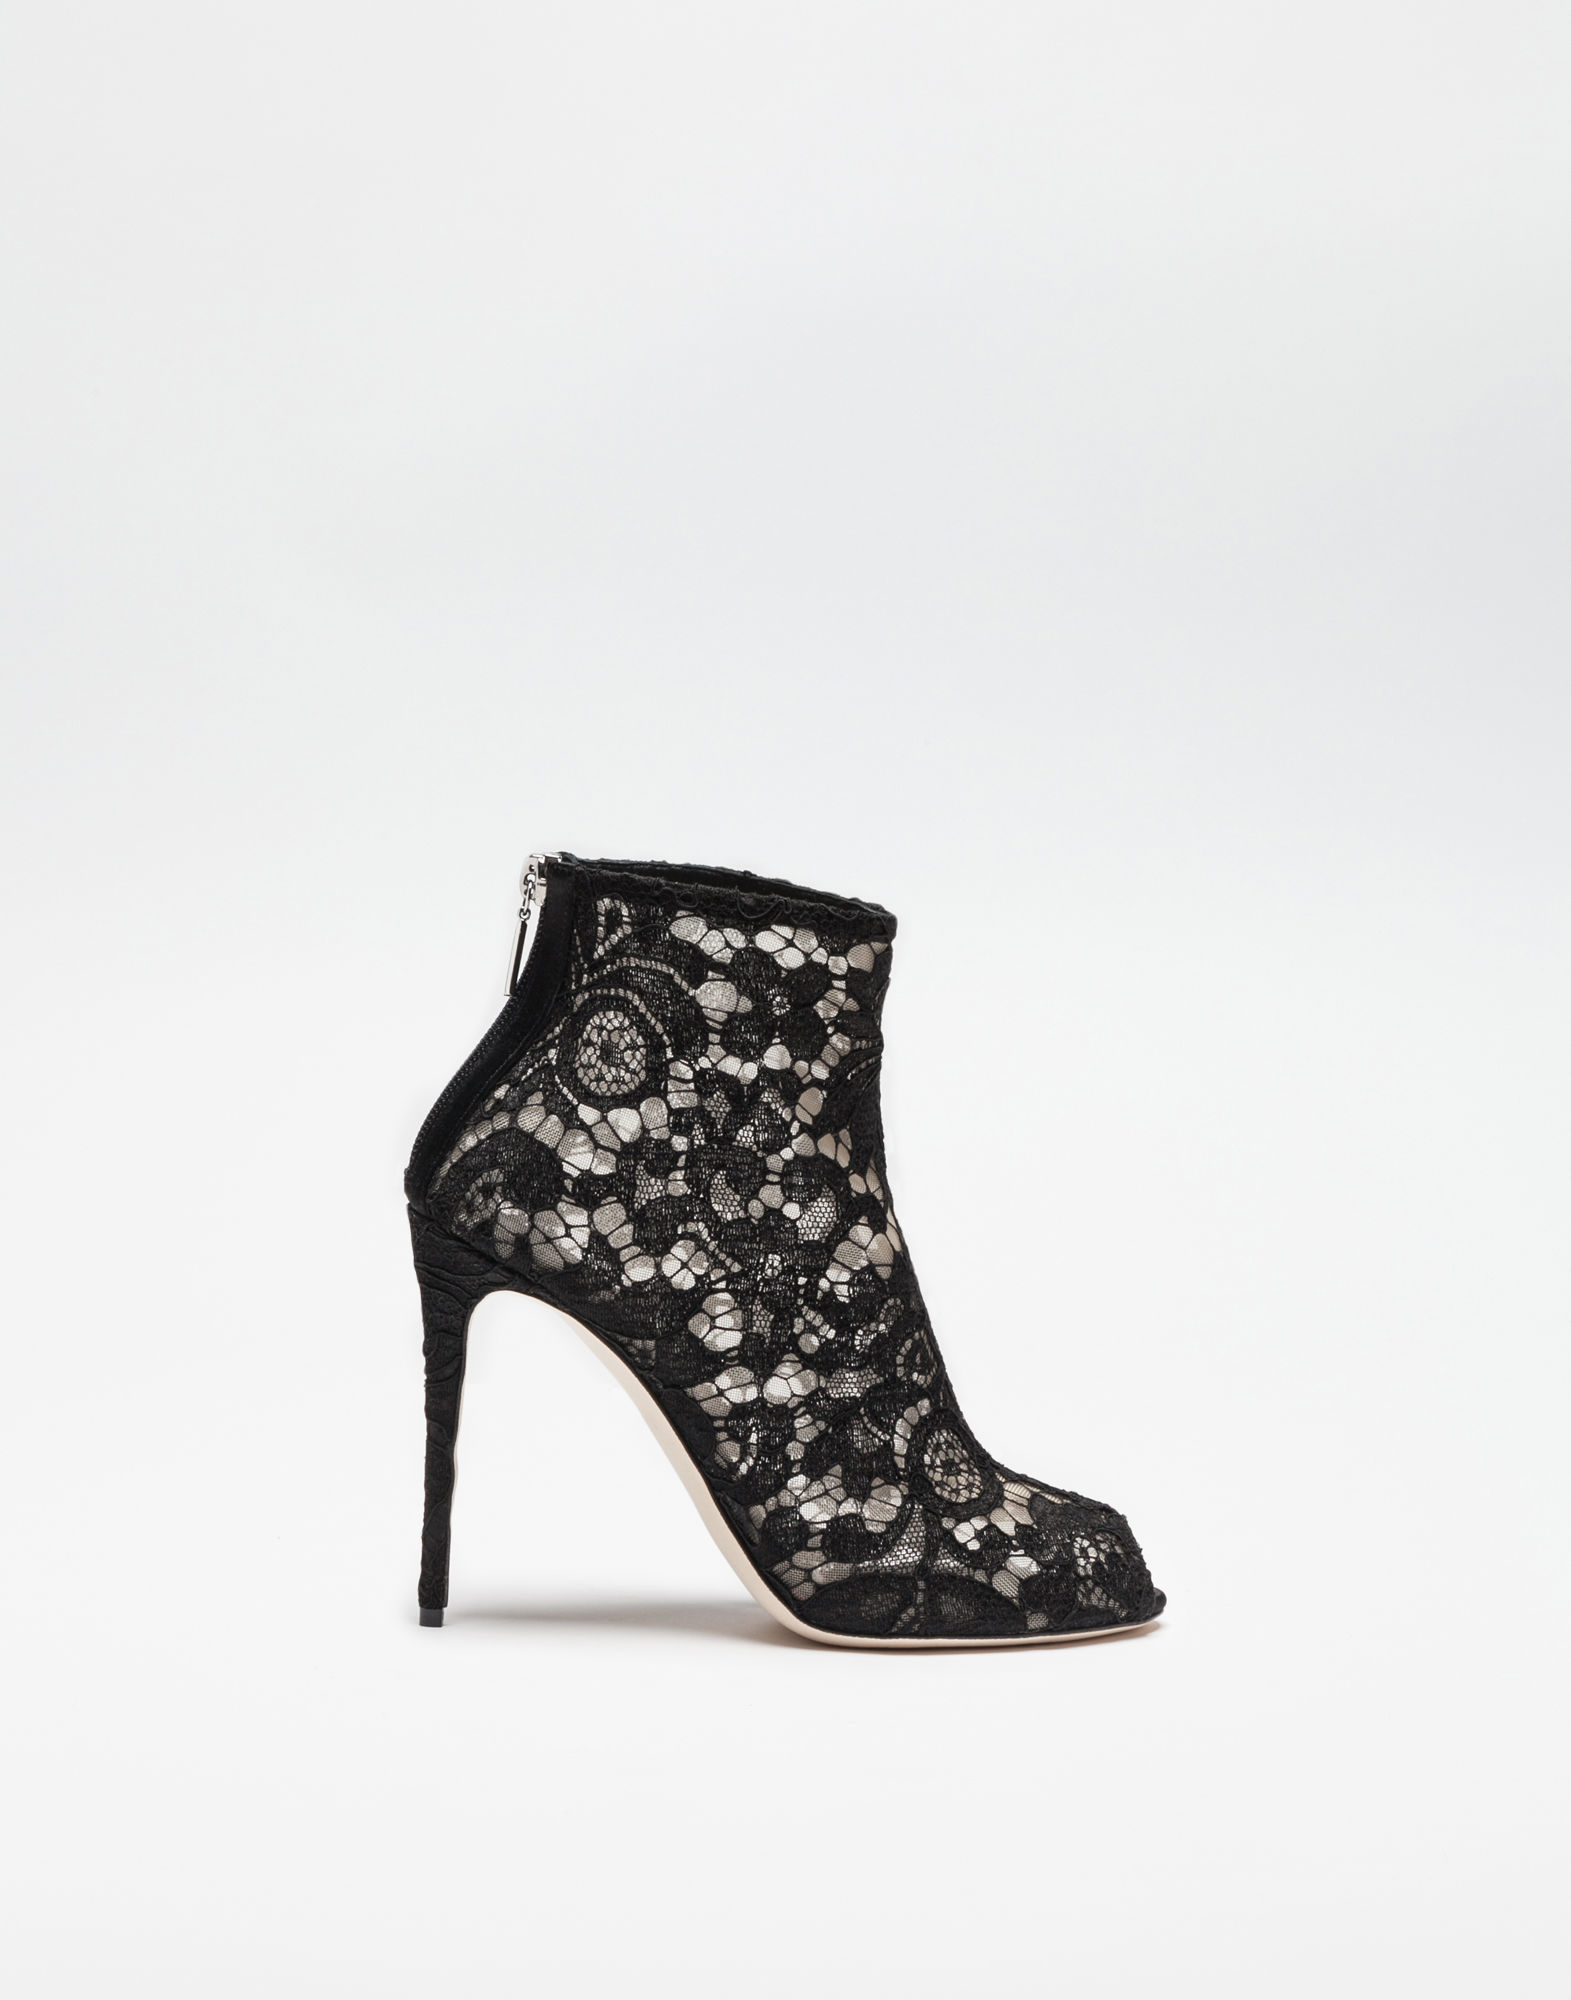 BOOTS IN LACE